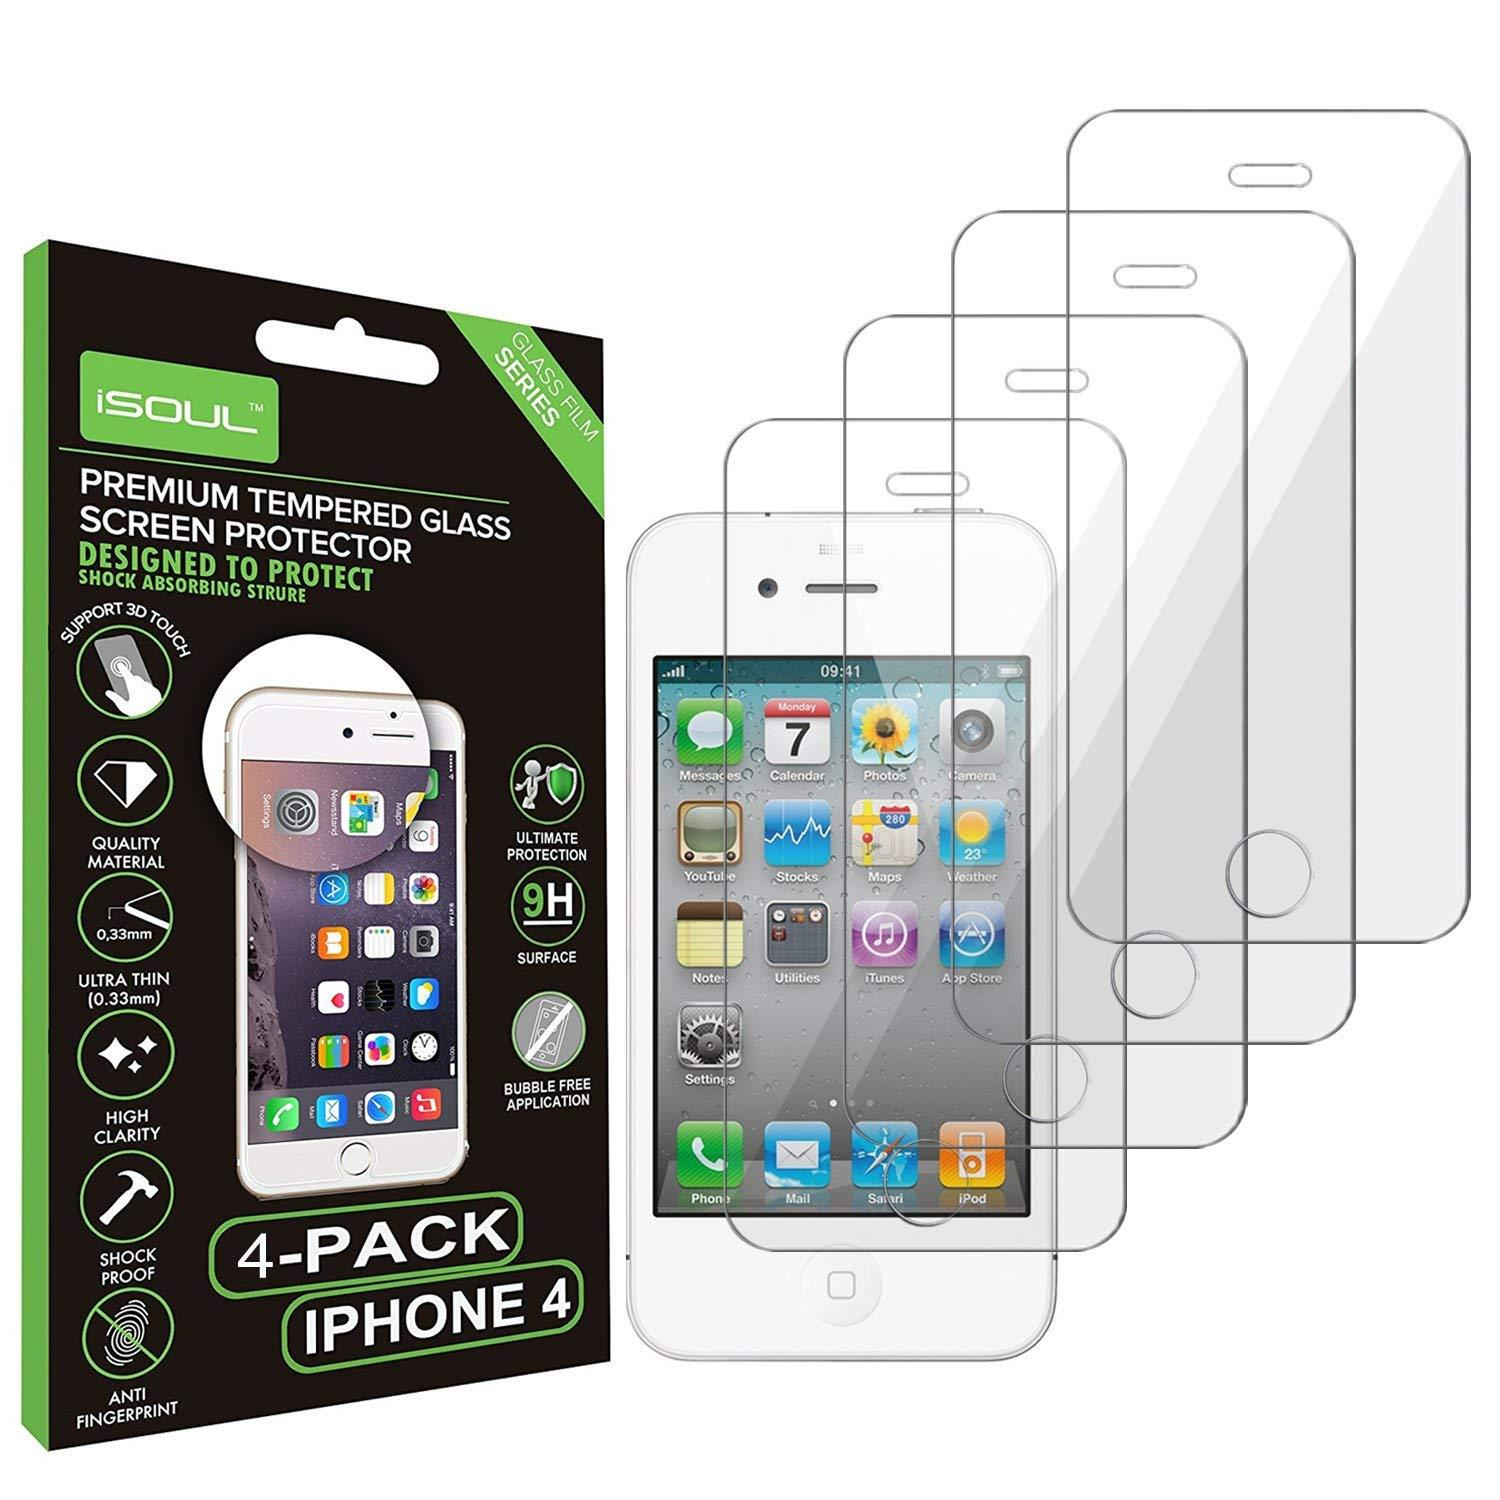 iSOUL Premium Tempered Glass iPhone 4/4S Screen Protector 9H Hard Ultra Slim 0.26mm Thin Pack of 4 by  iSOUL